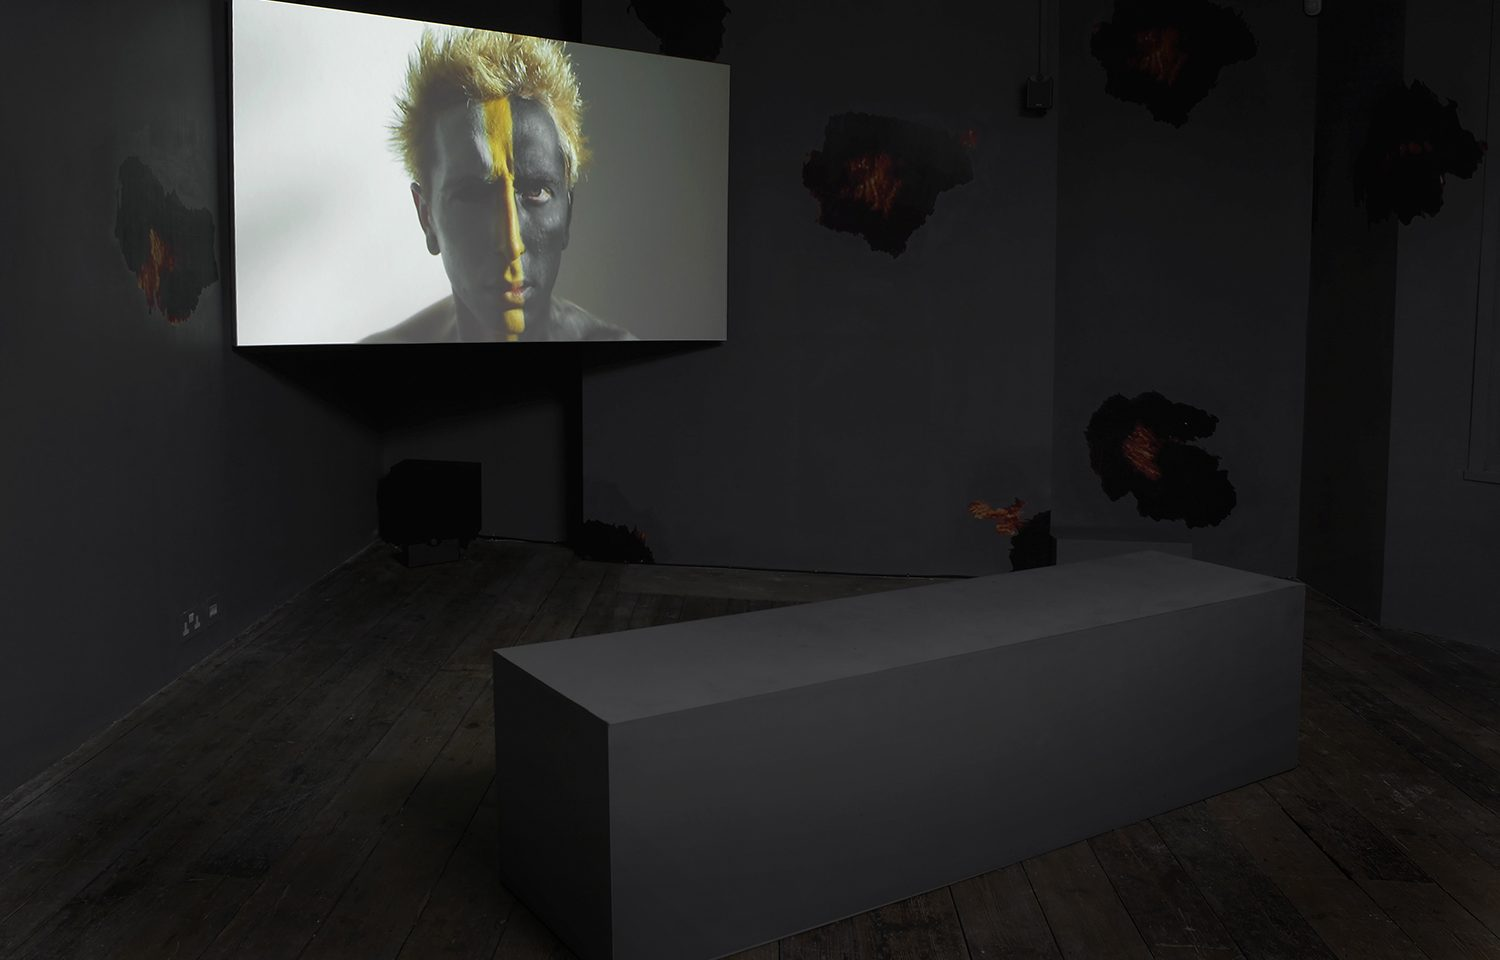 Installation view of Oh wicked flesh!. Image courtesy of the artist and the South London Gallery. Photo: Andy Keate